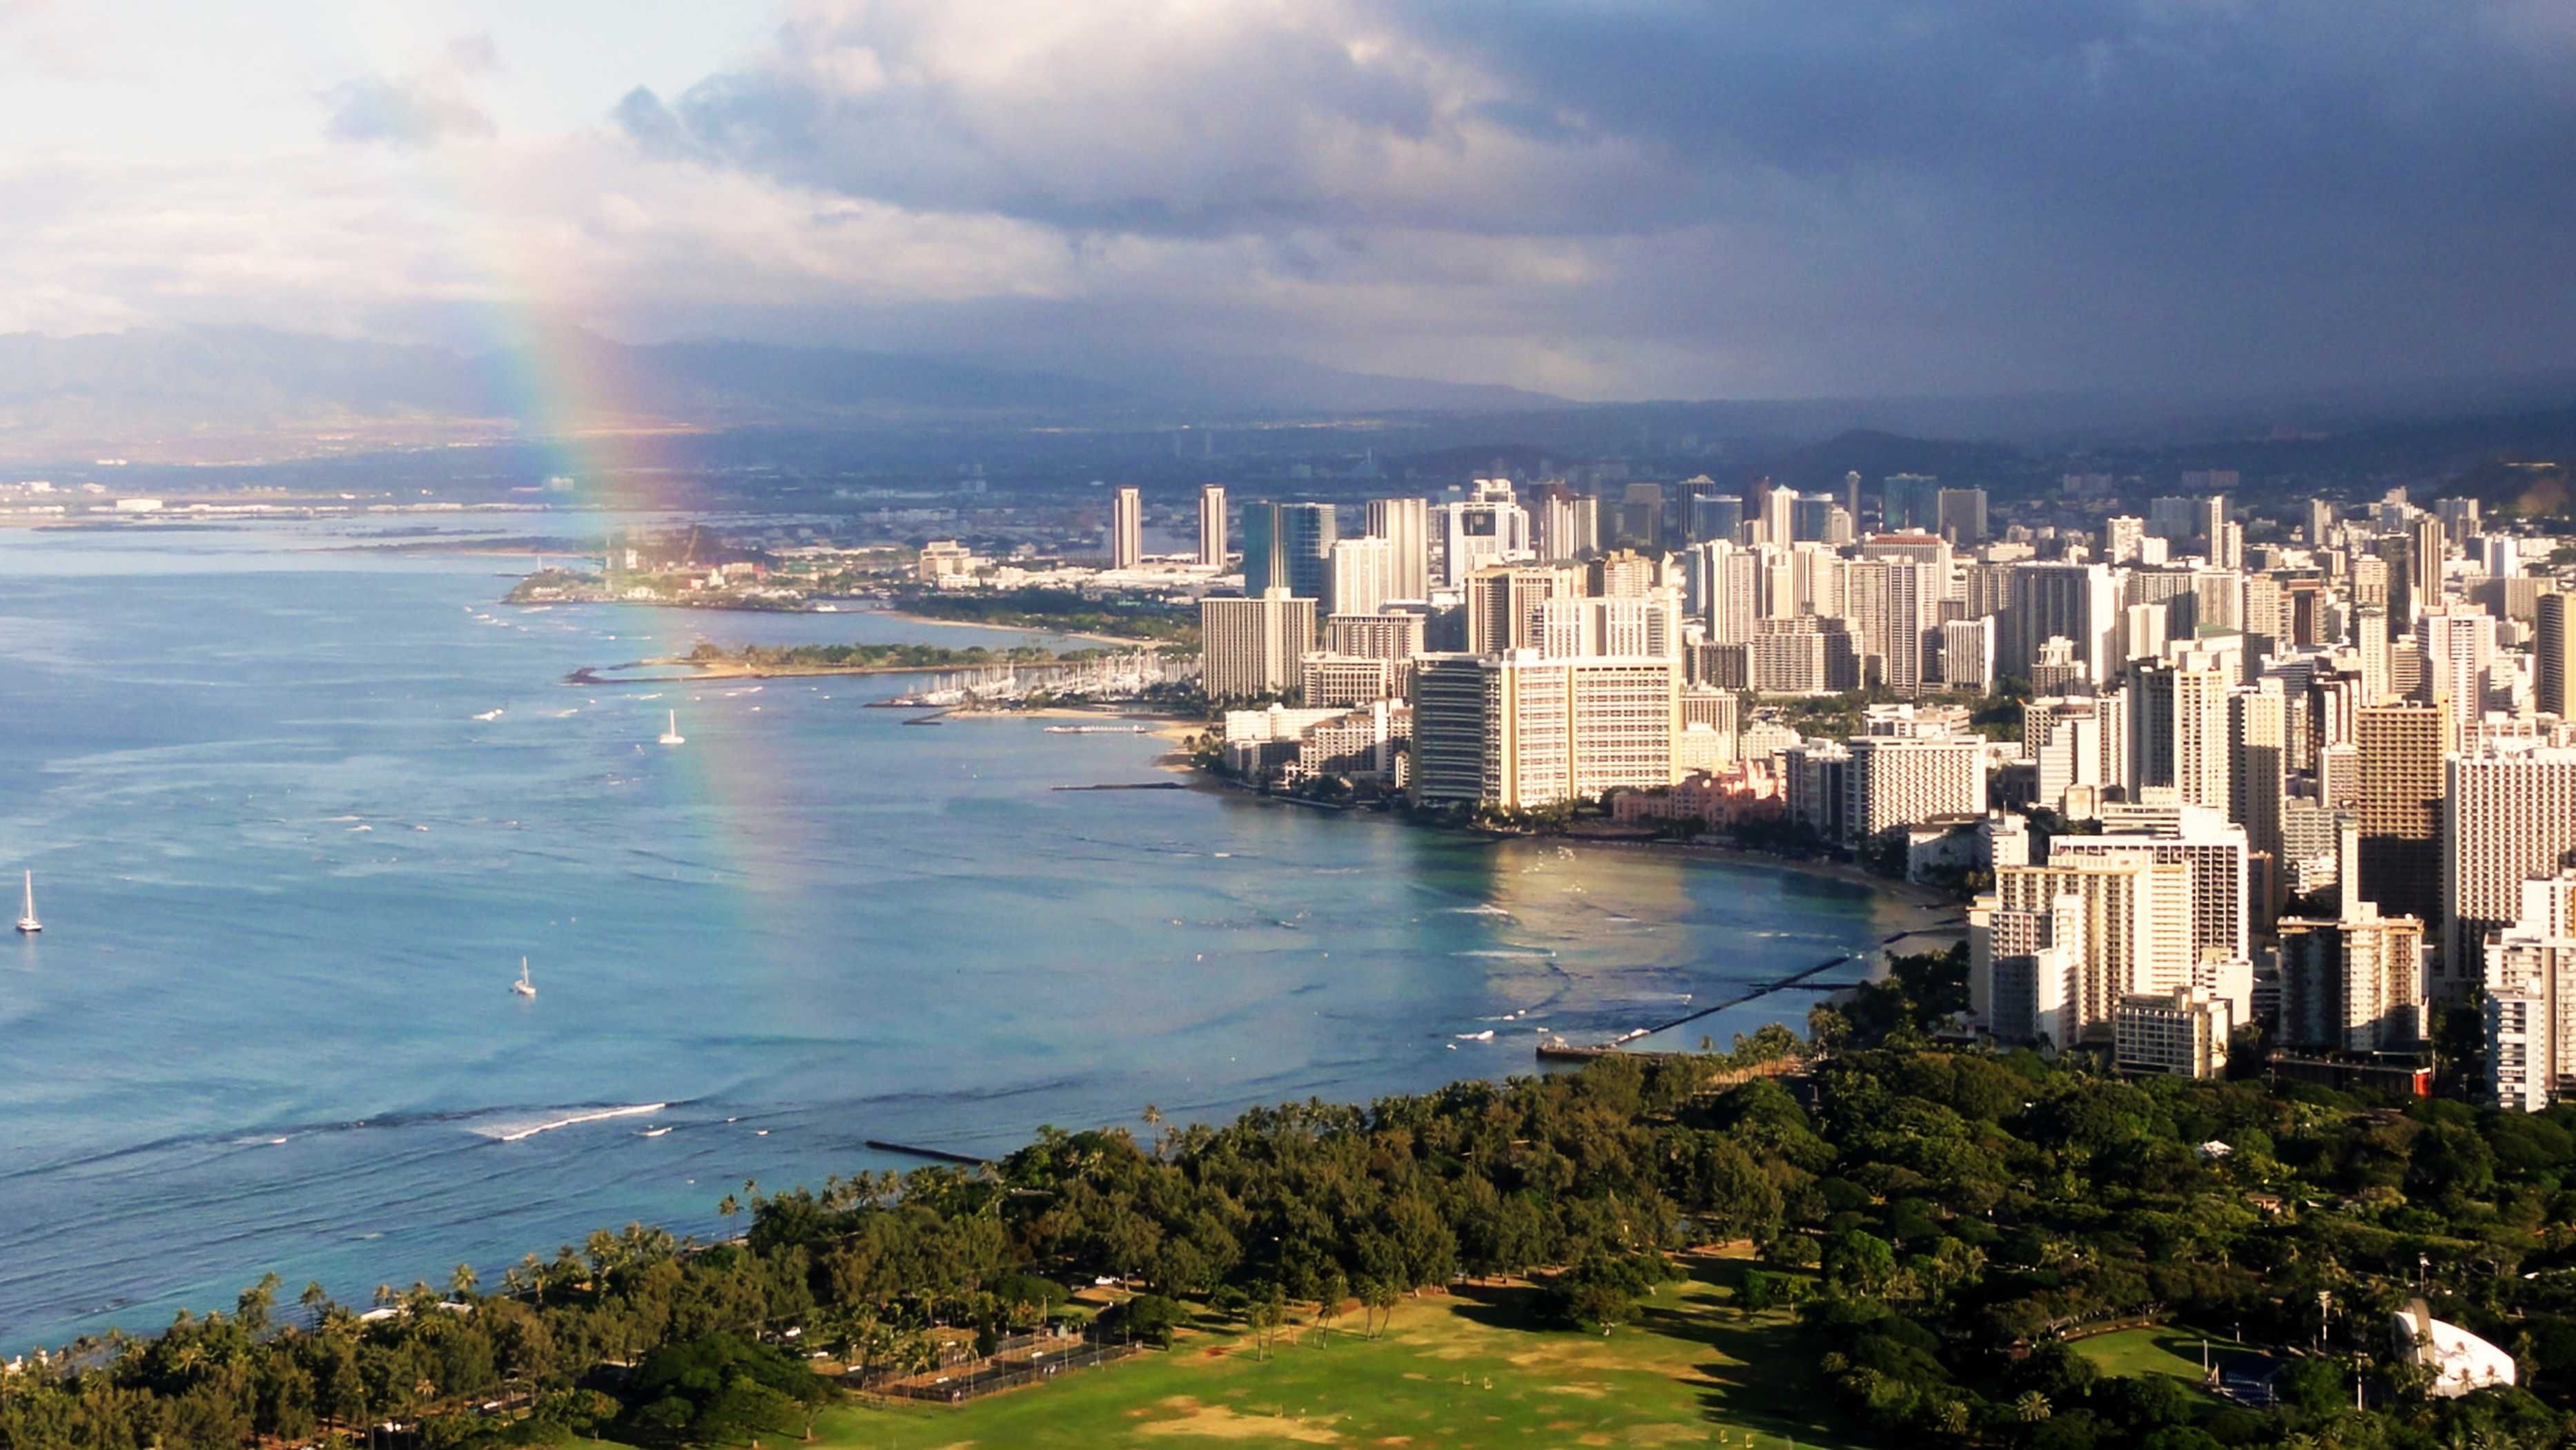 honolulu hawaii.JPG